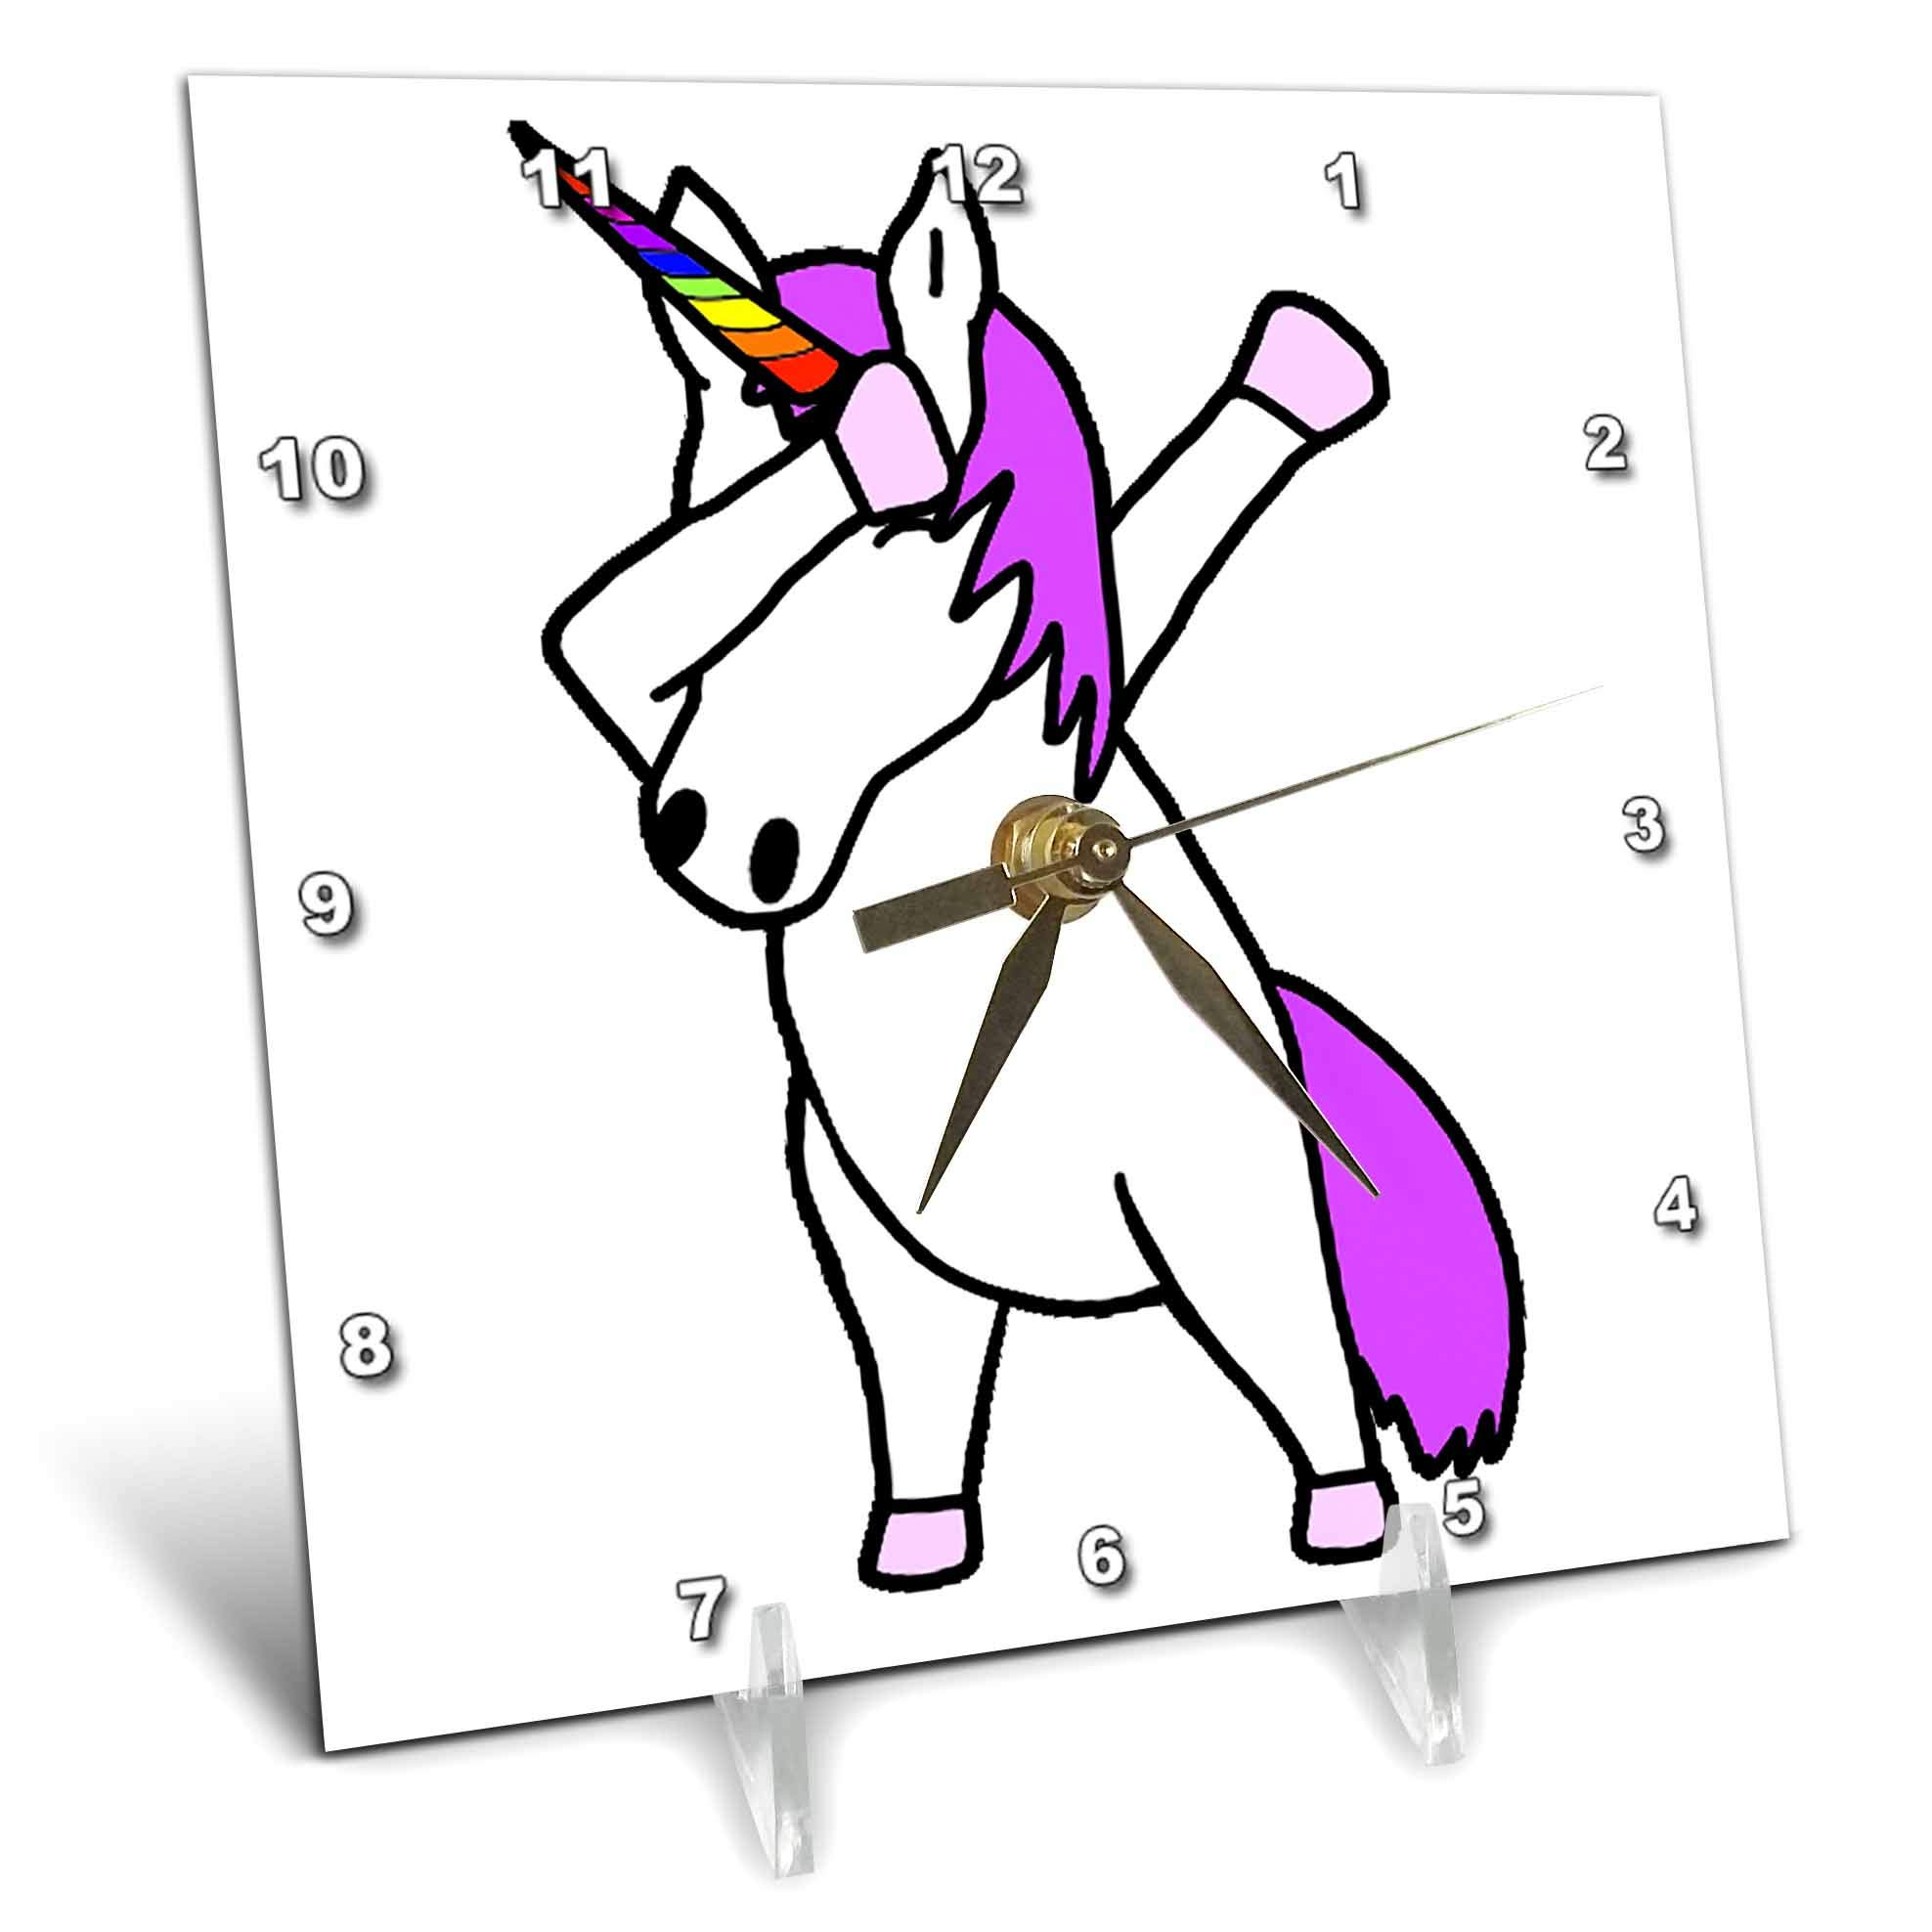 3dRose AllSouthernDesignTees - Dabbing - Cute funny cool dabbing dance unicorn trendy cartoon - 6x6 Desk Clock (dc_290614_1) by 3dRose (Image #1)